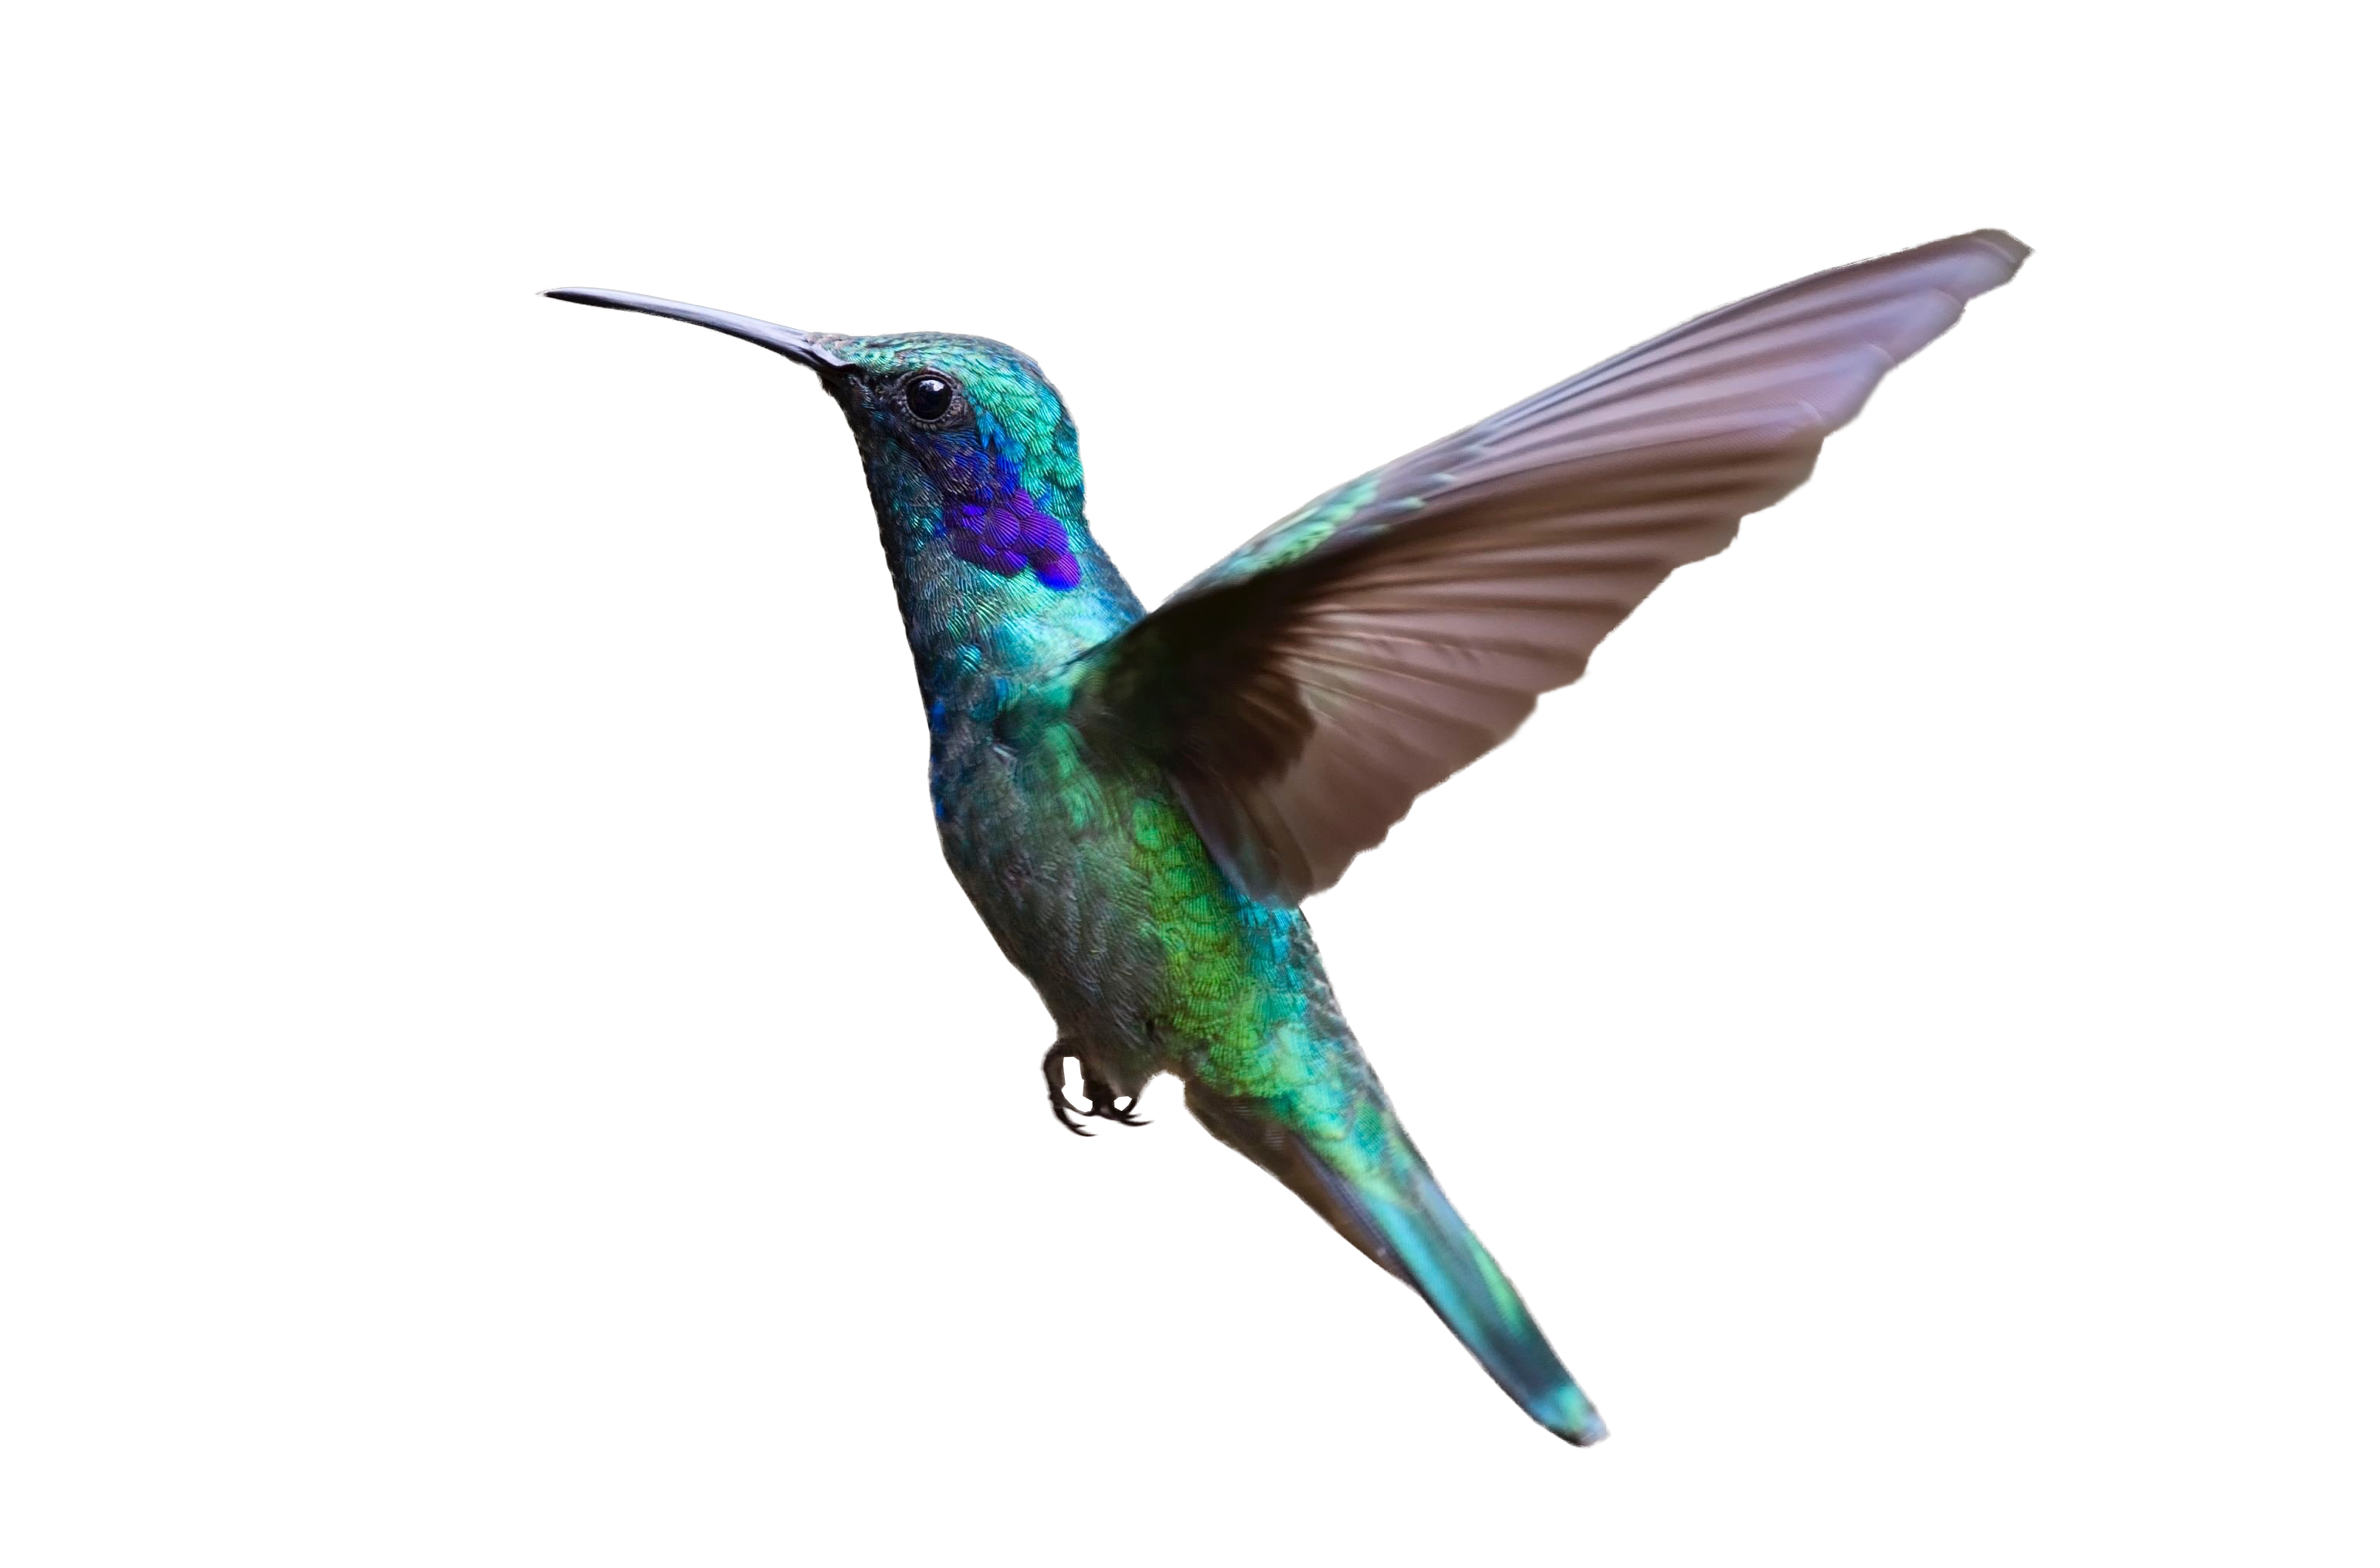 Colorful flying png image. Hummingbird transparent clipart library download